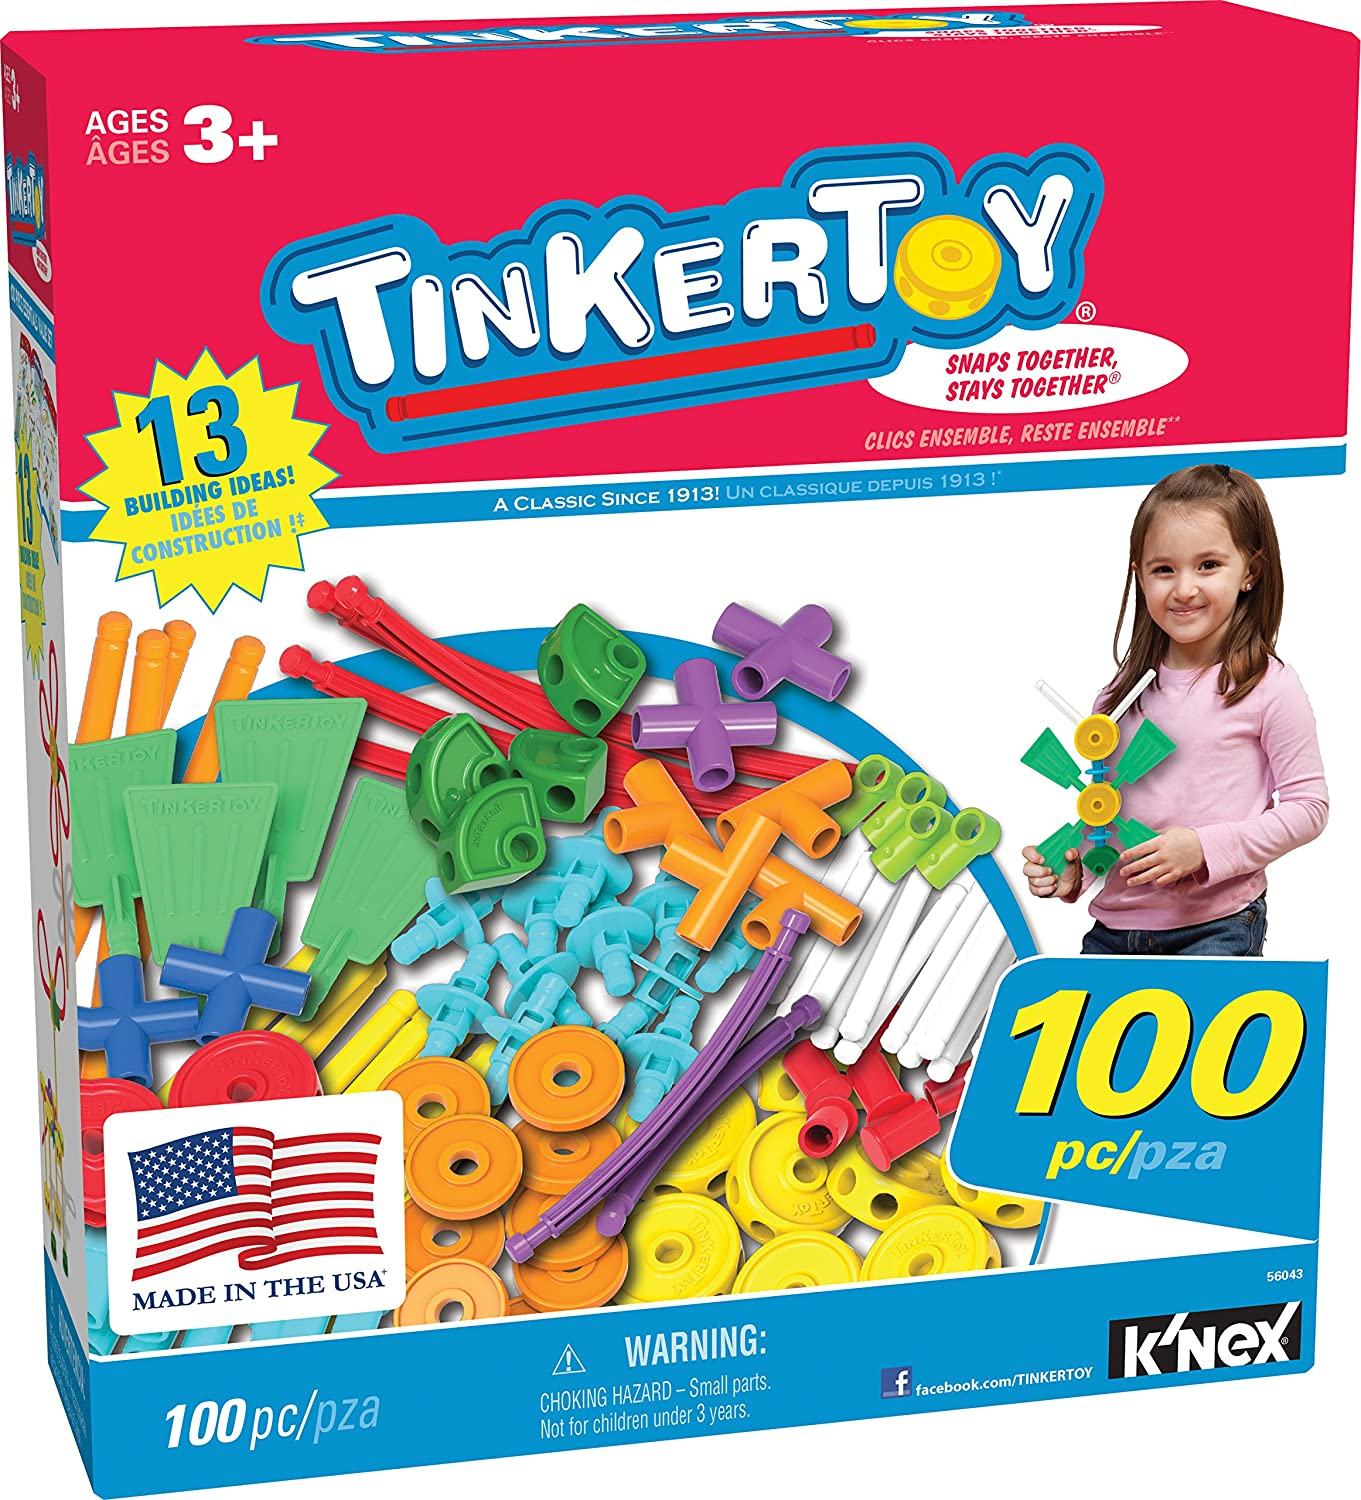 Special price for a limited time TINKERTOY ‒ 100 Piece Essentials Max 55% OFF Set Value P Ages 3+